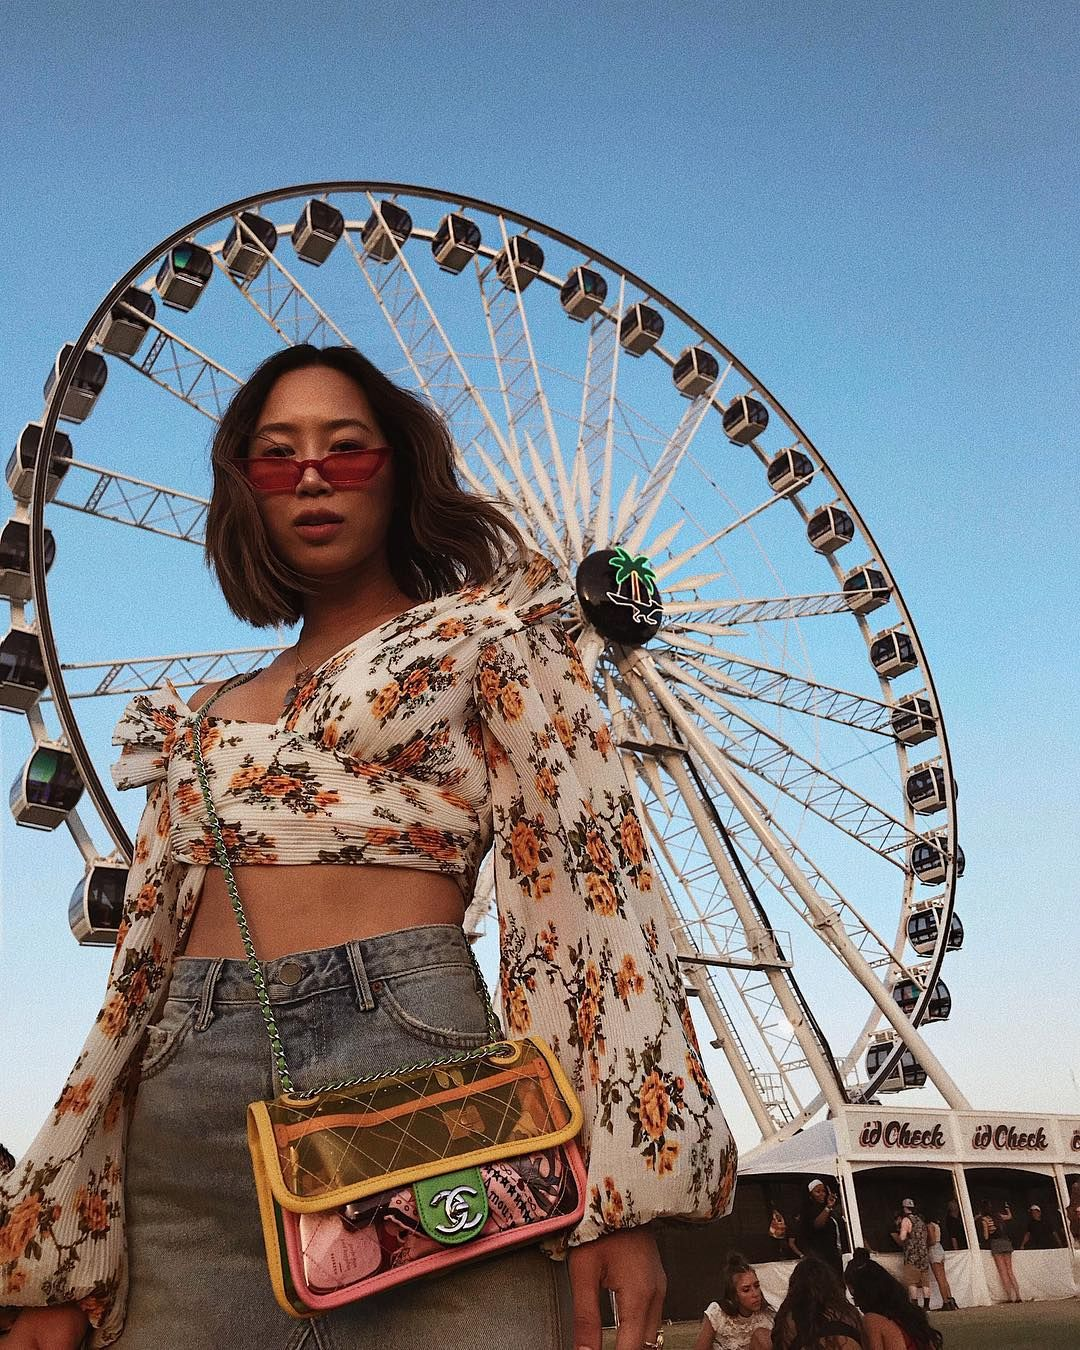 309d8902bb How to stand out in the Coachella crowd | Colors Colors Colors ...